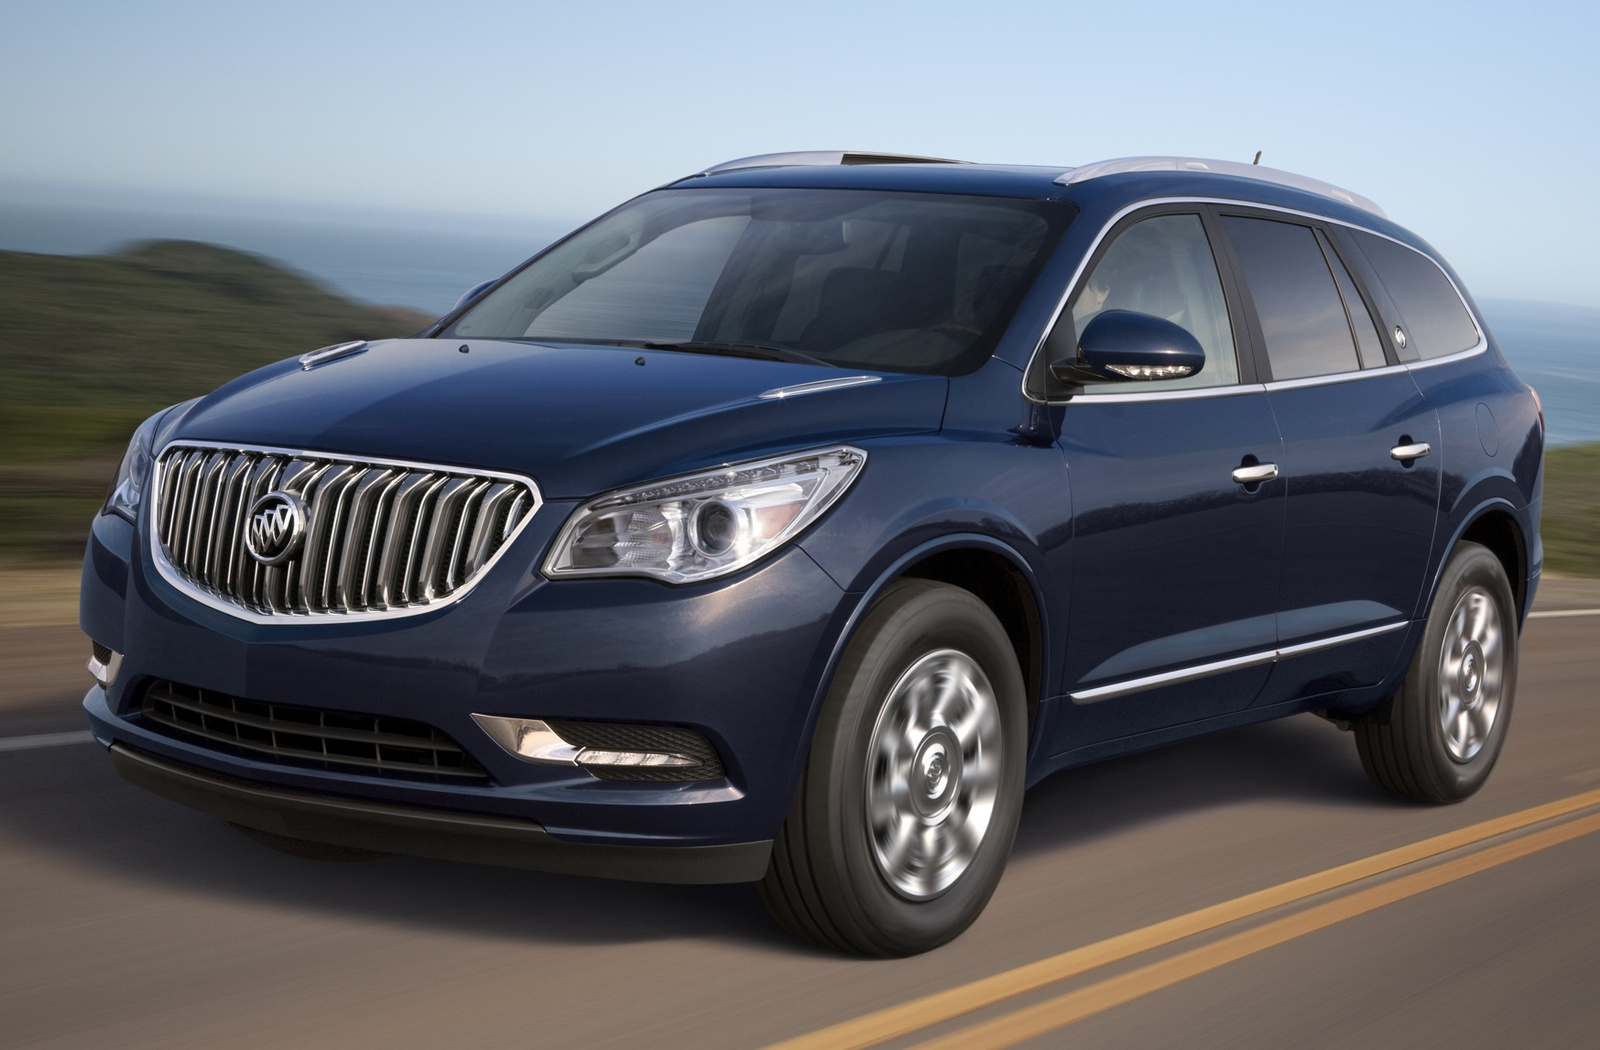 2015 Buick Enclave photo - 1